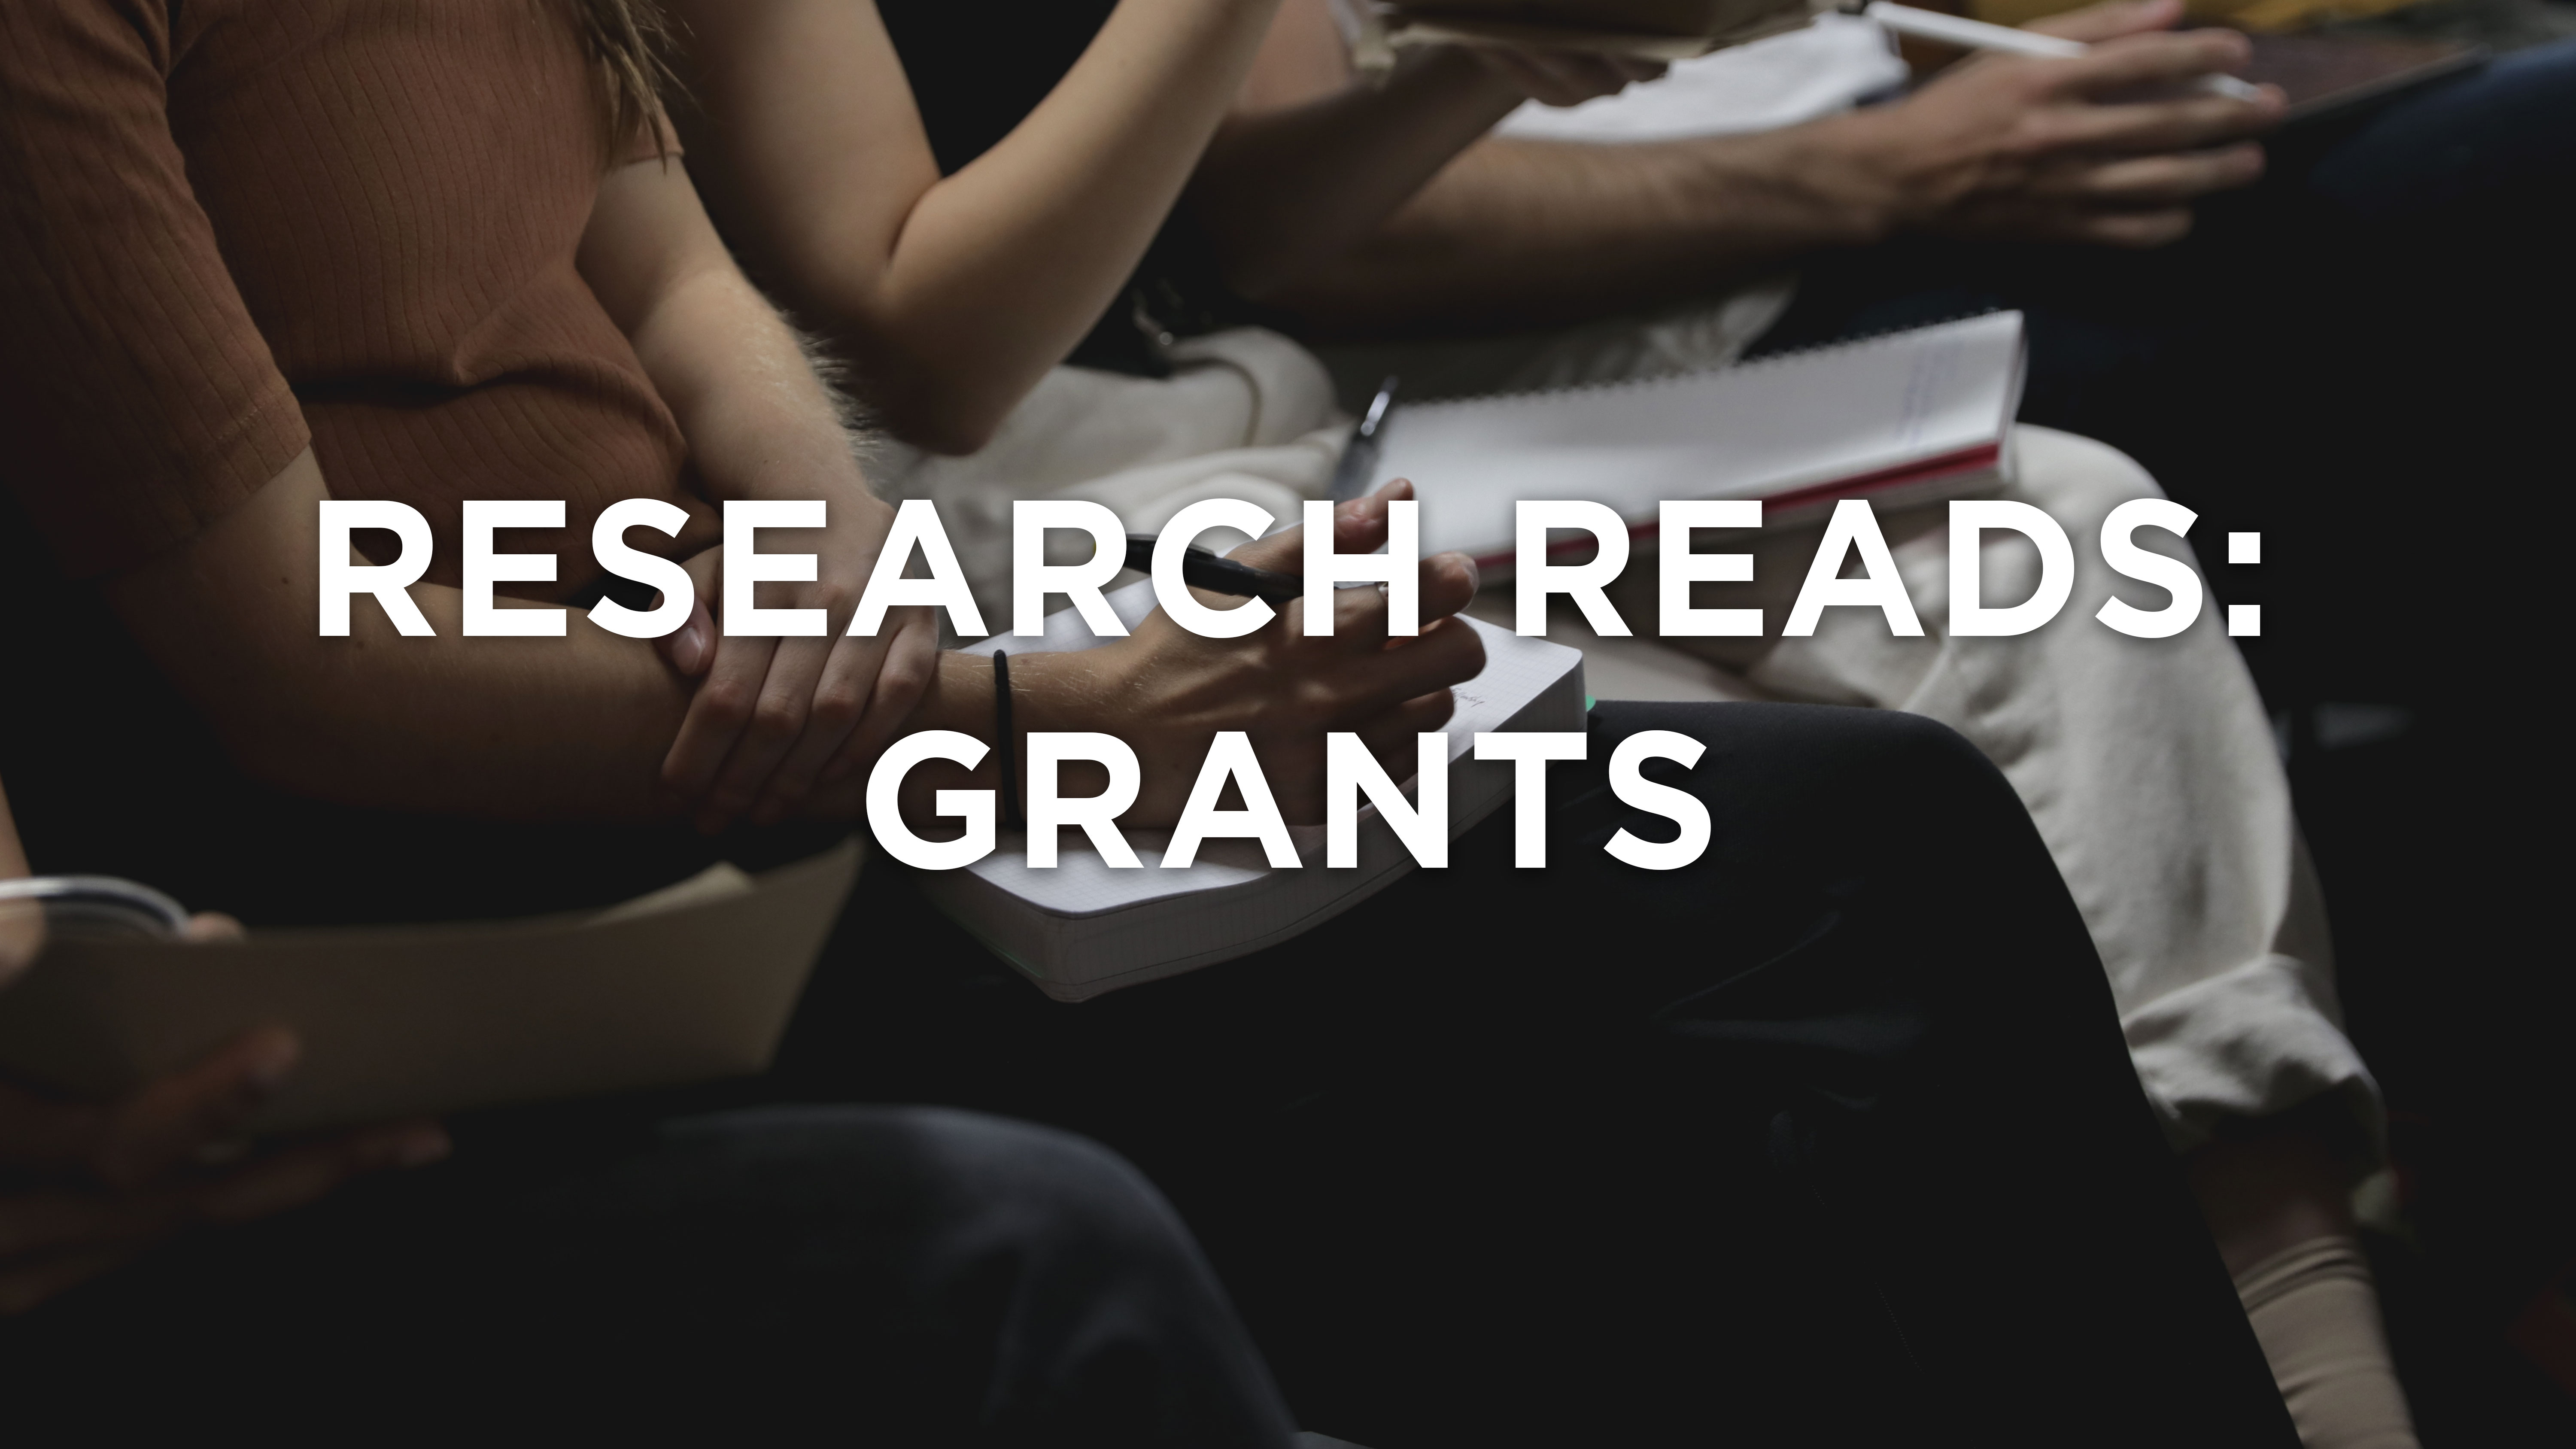 Research Reads: Grants